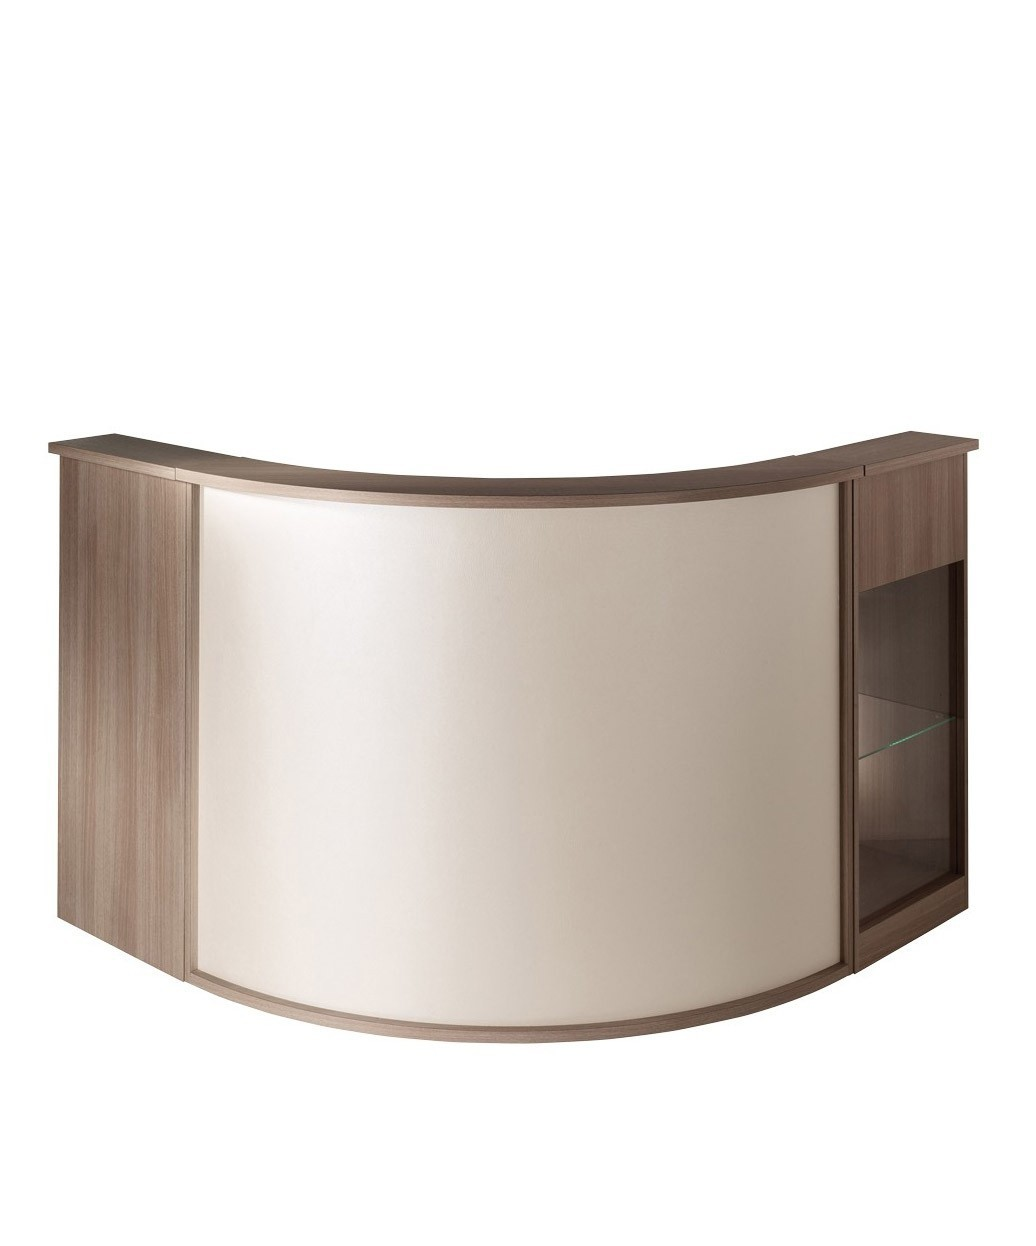 RD186 Form Italian Reception Desk